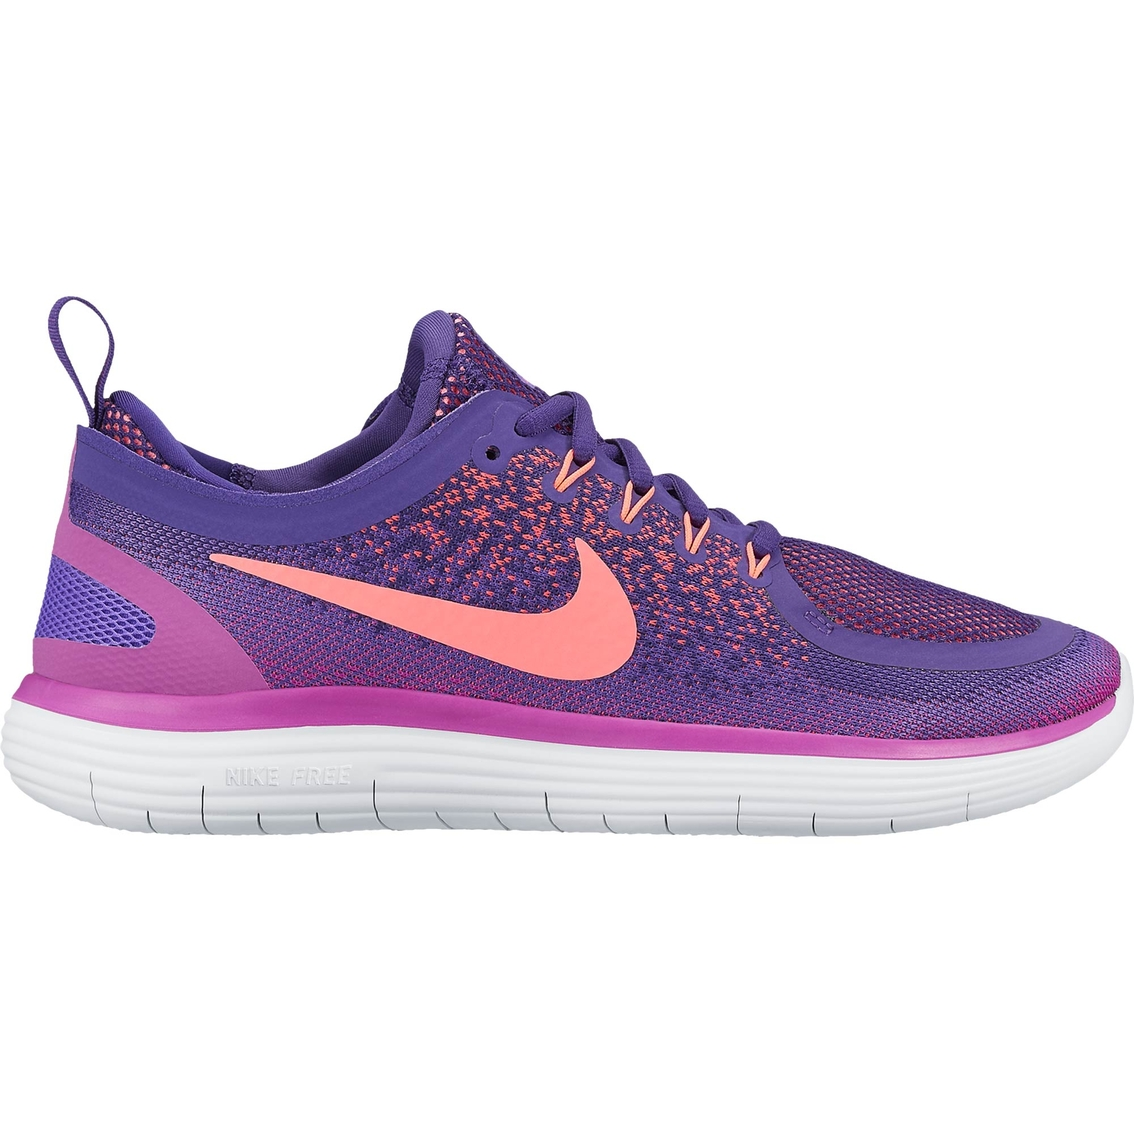 huge selection of 87a71 7af63 Nike Women's Free Rn Distance 2017 Running Shoes   Running ...